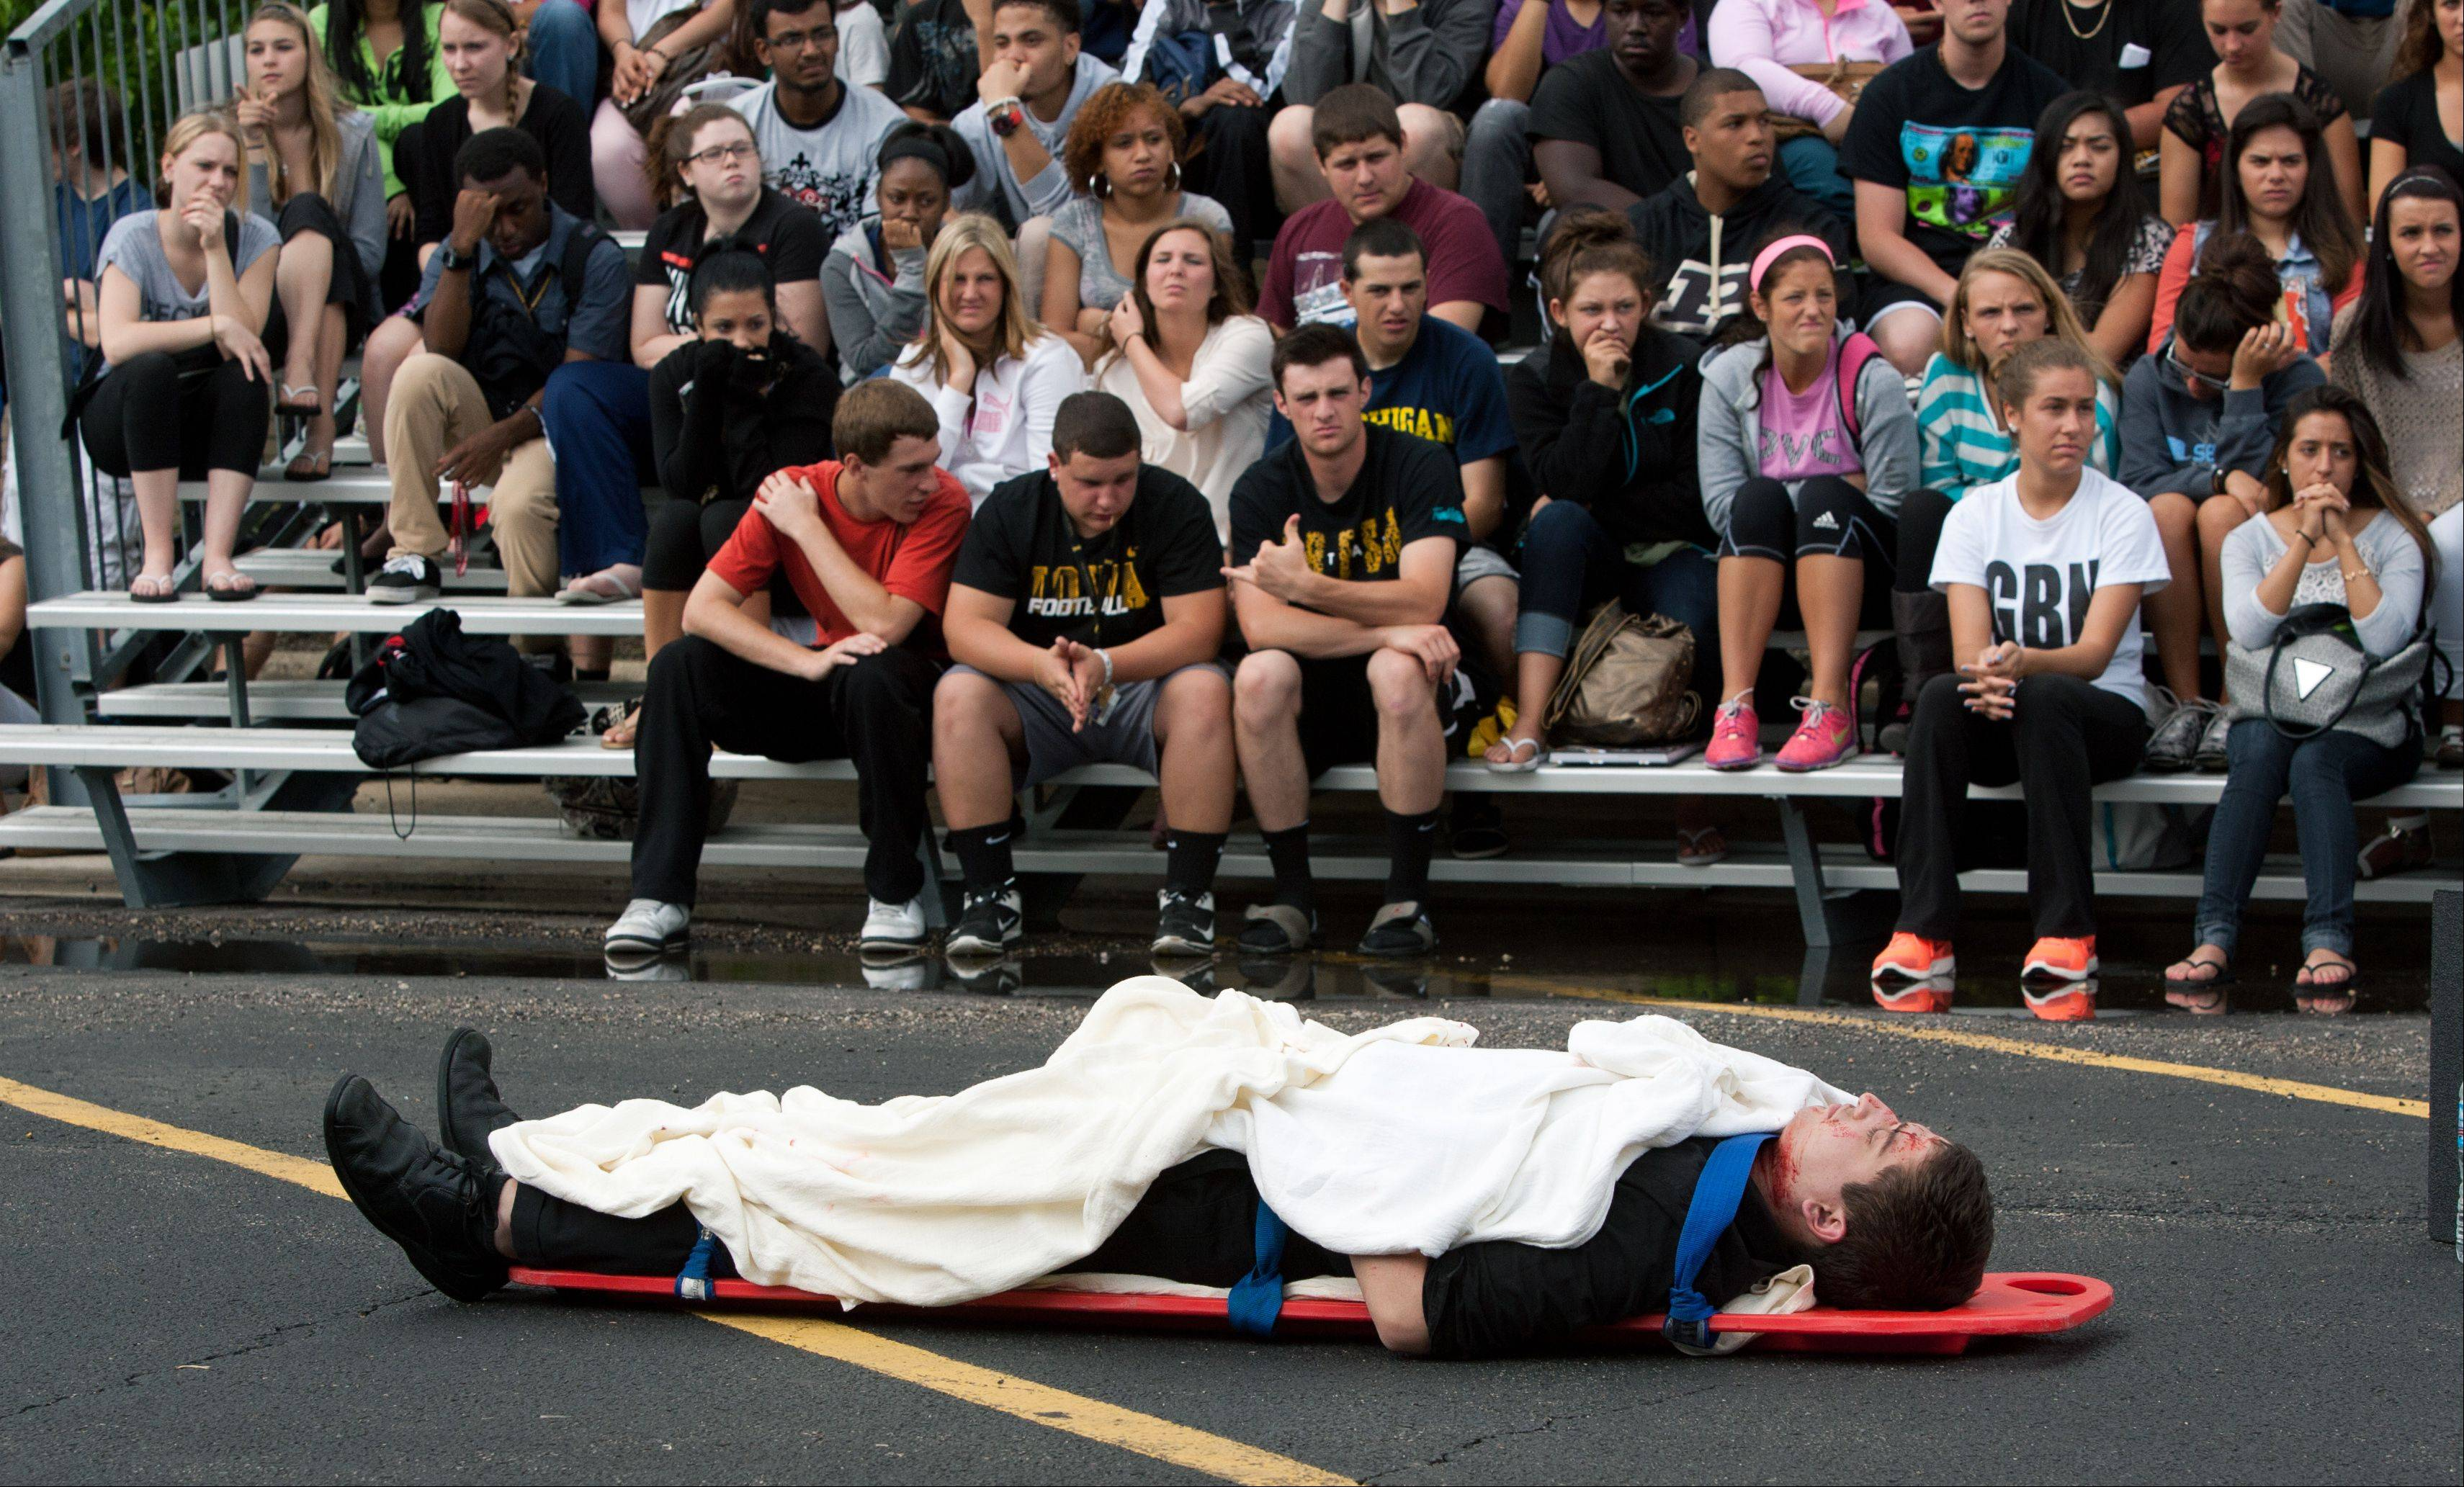 Students at Glenbard North High School watch a mock DUI fatal car crash demonstration, dubbed Operation Safe Celebration,Wednesday in advance of senior prom Saturday.